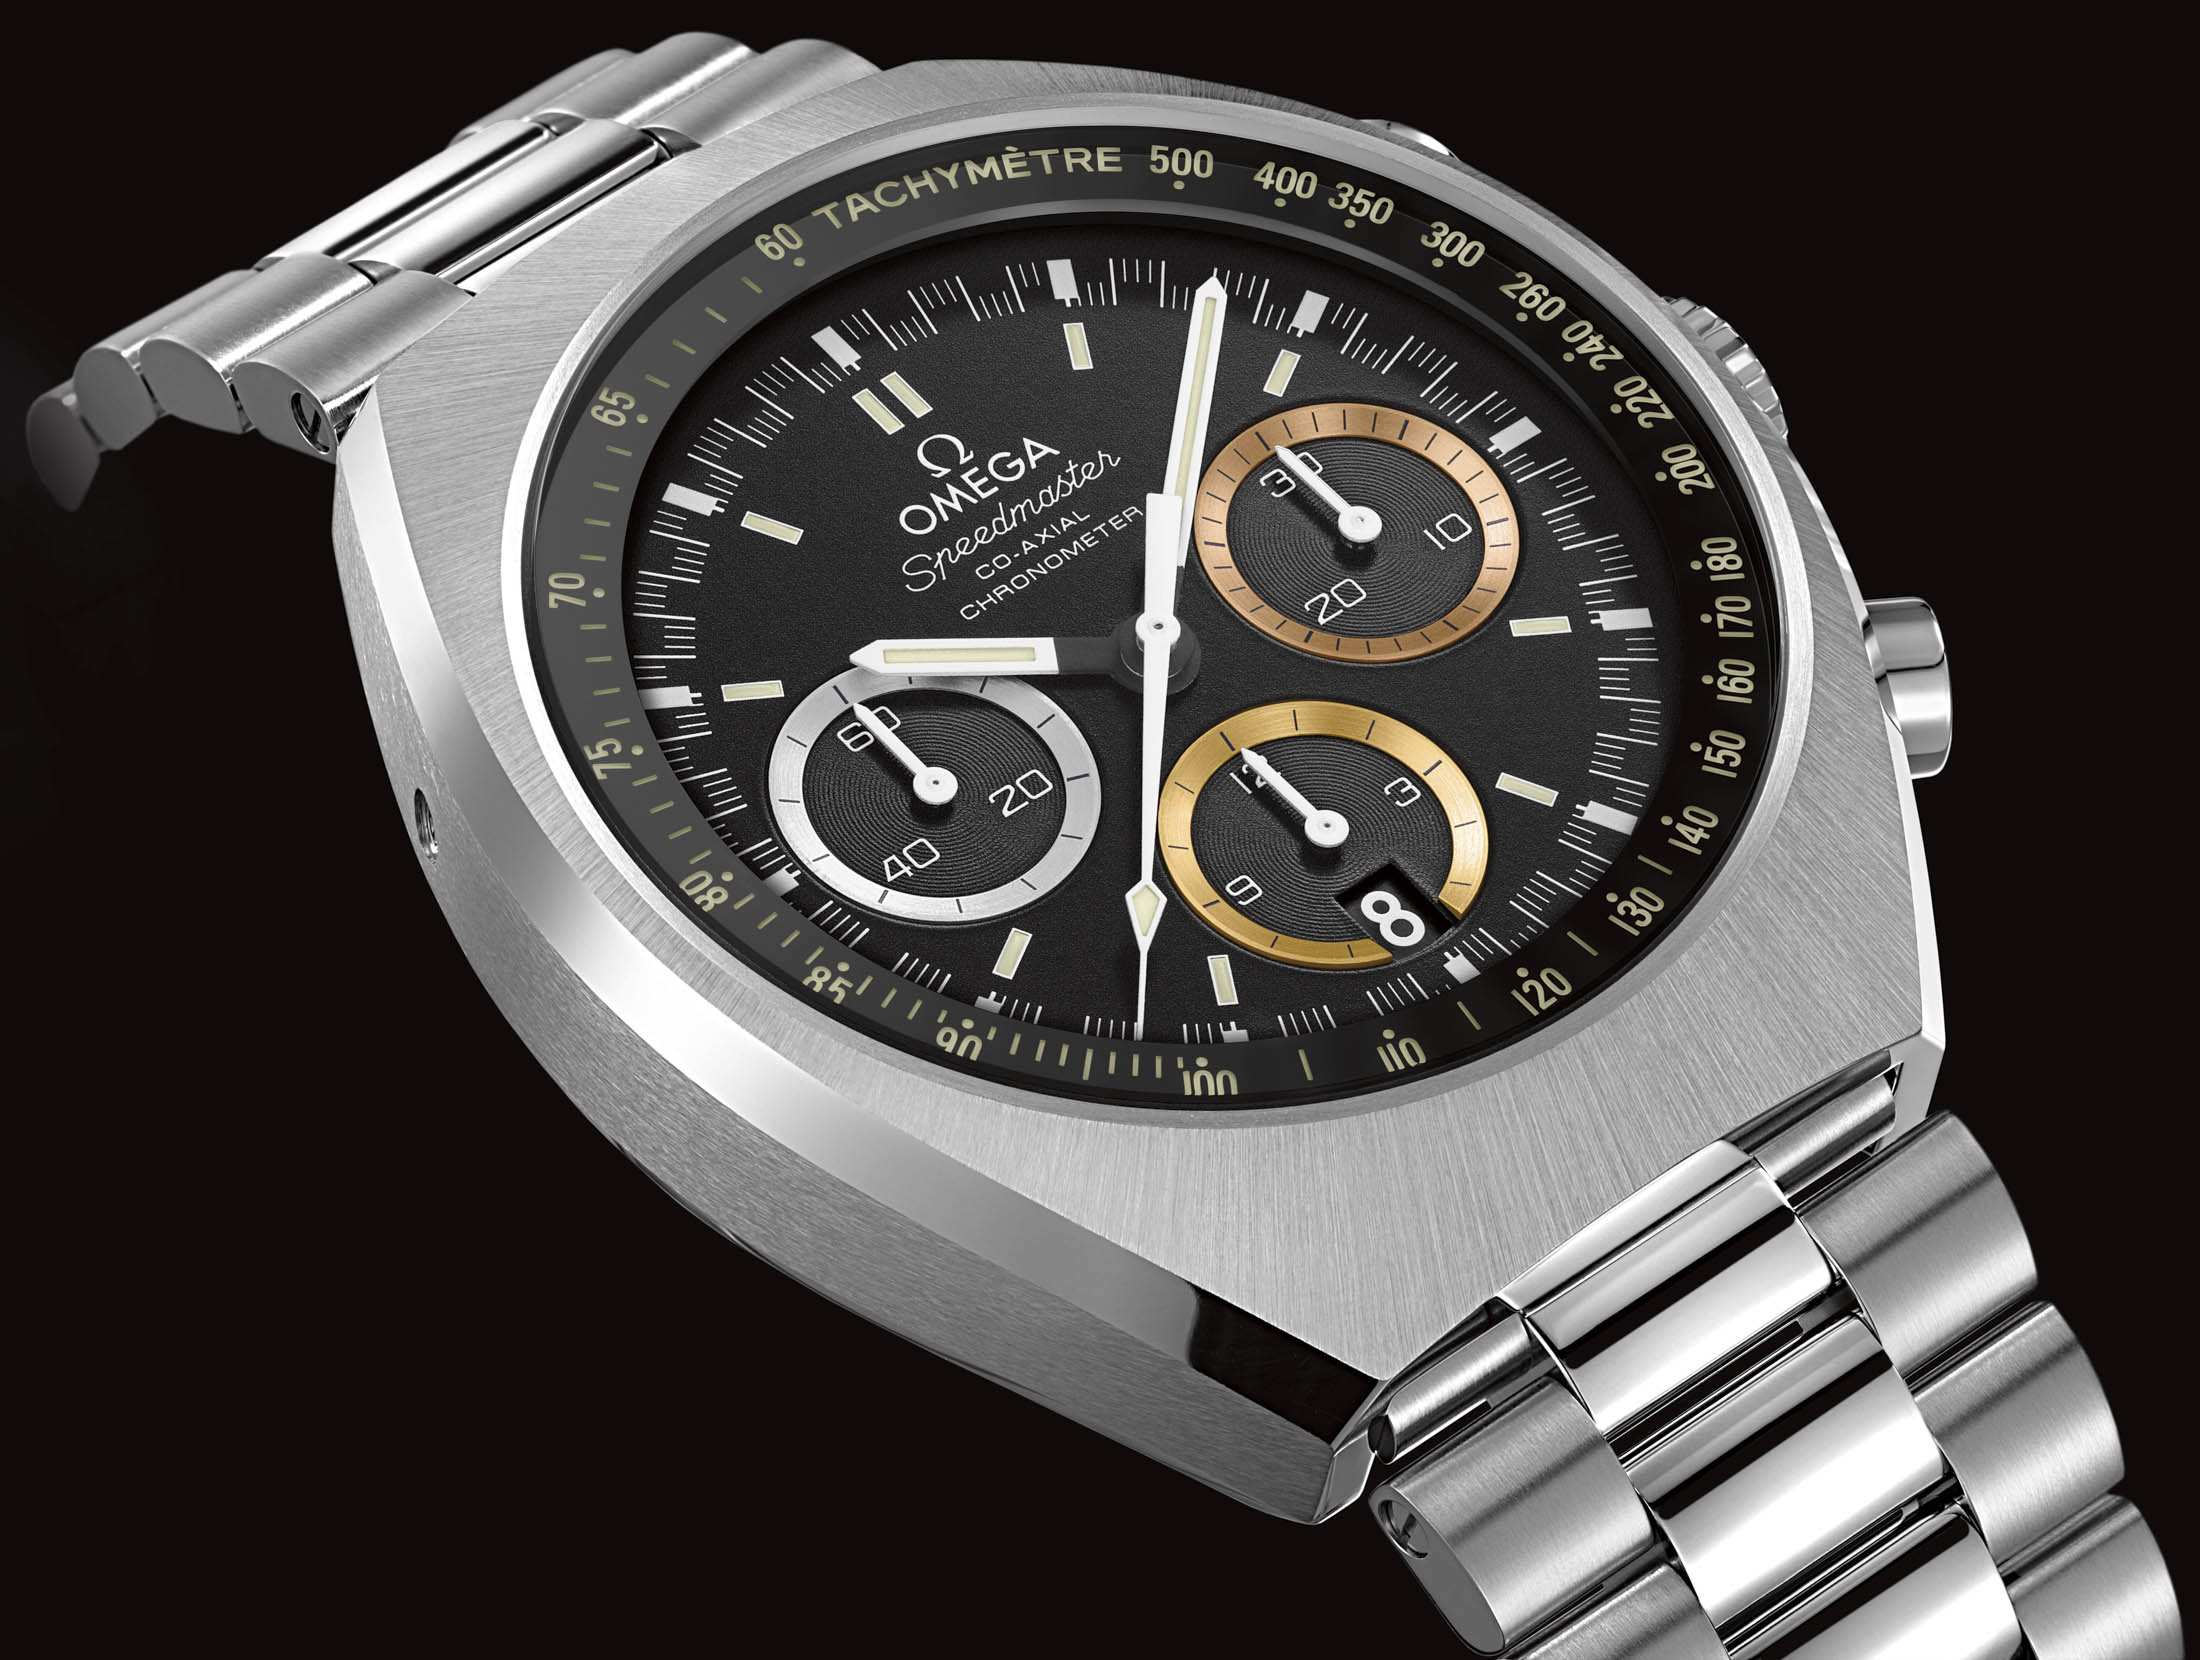 watches models new and limited seamaster edition trilogy speedmaster omega video containing railmaster box set